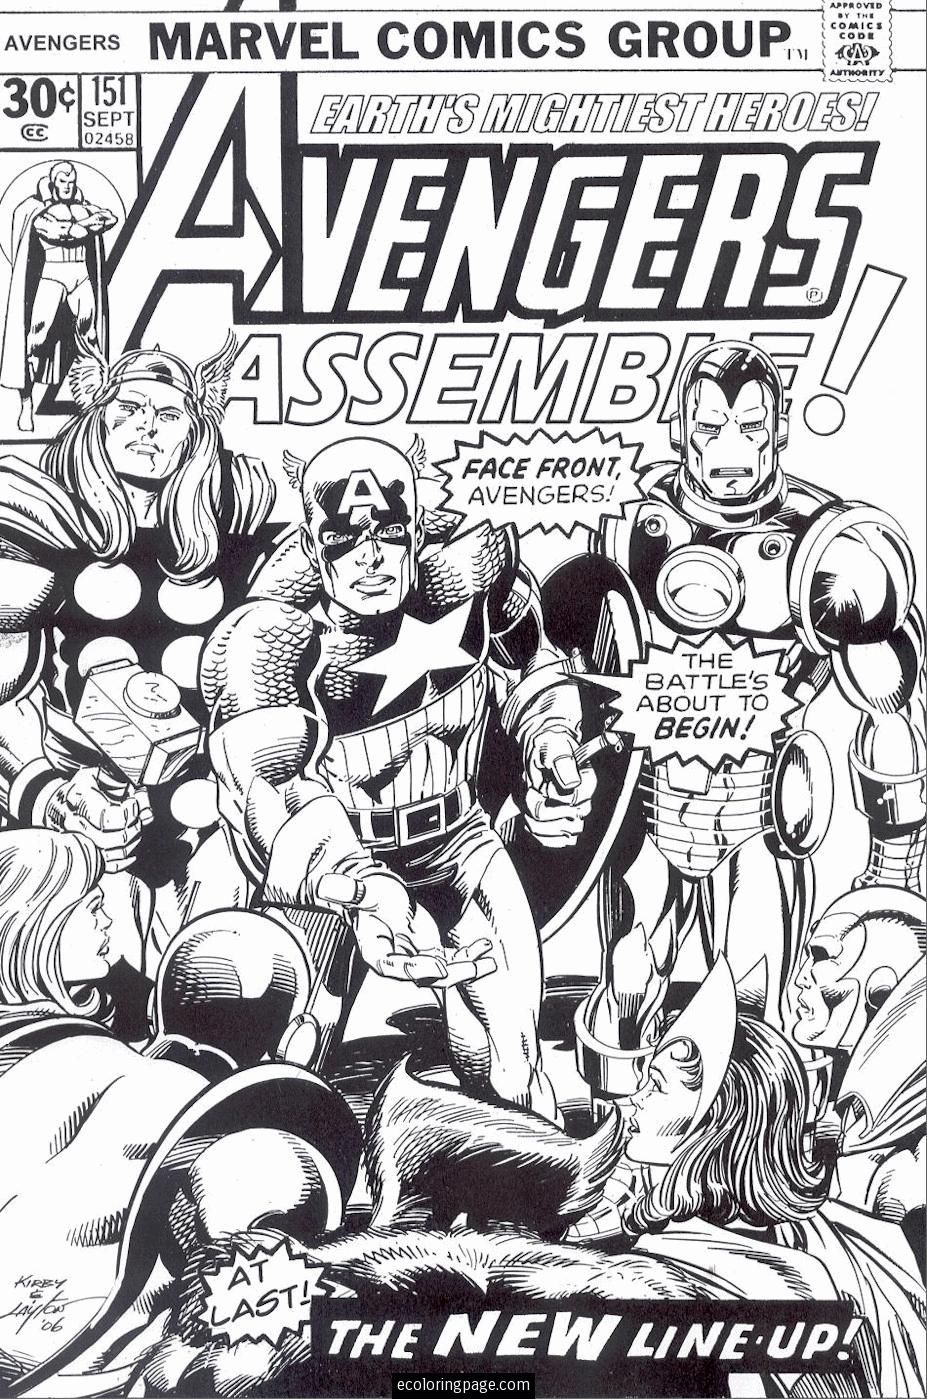 marvel superheroes avengers coloring page for kids printable